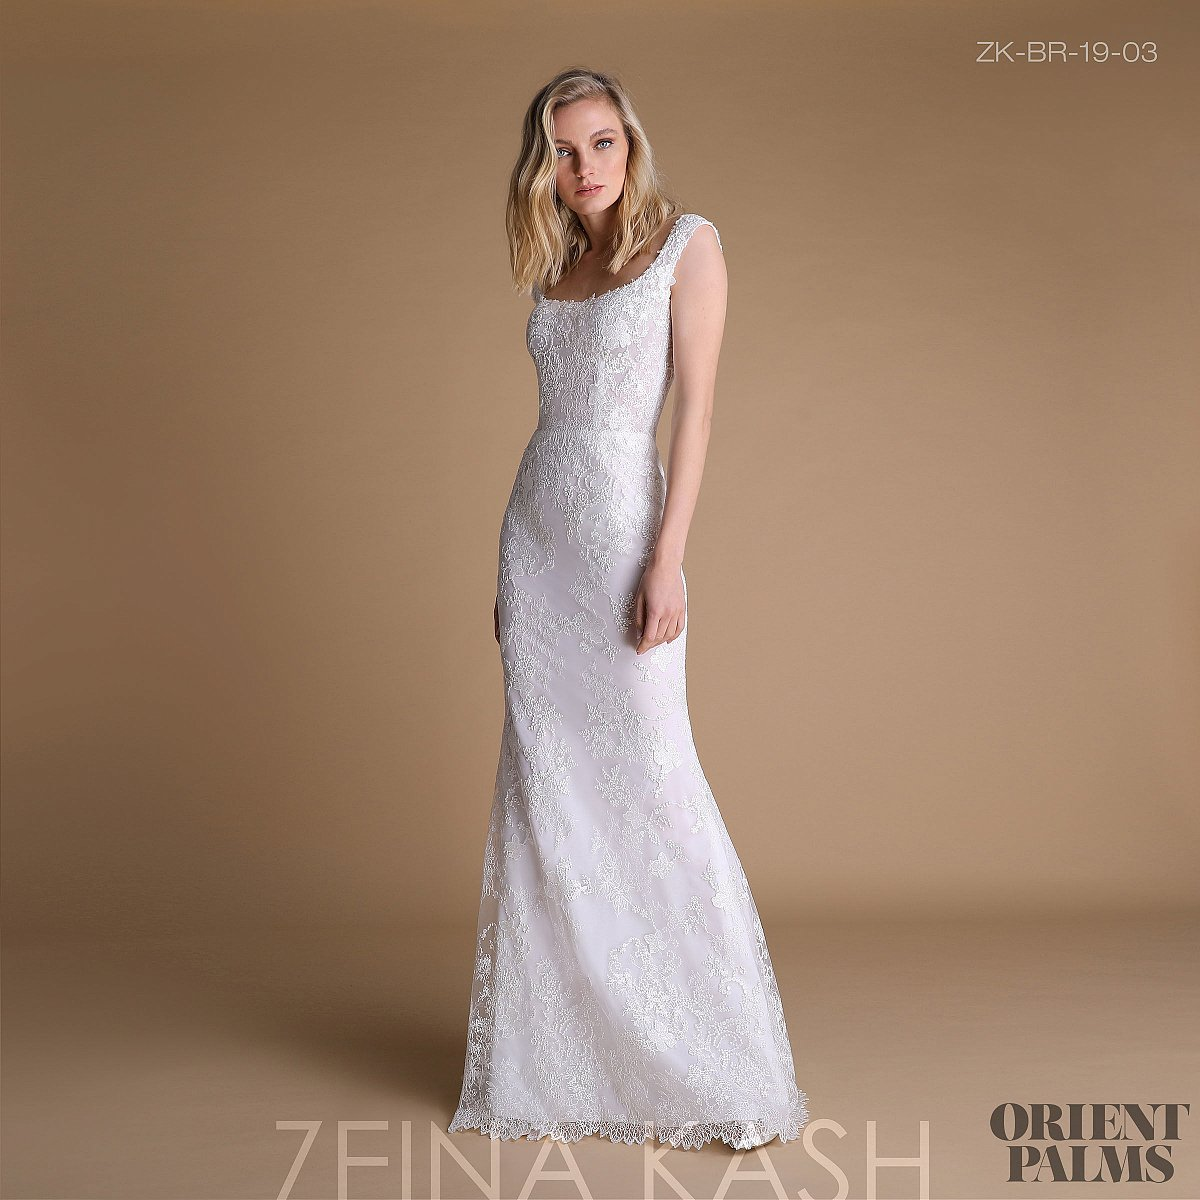 Zeina Kash 2019 collection - Bridal - 1